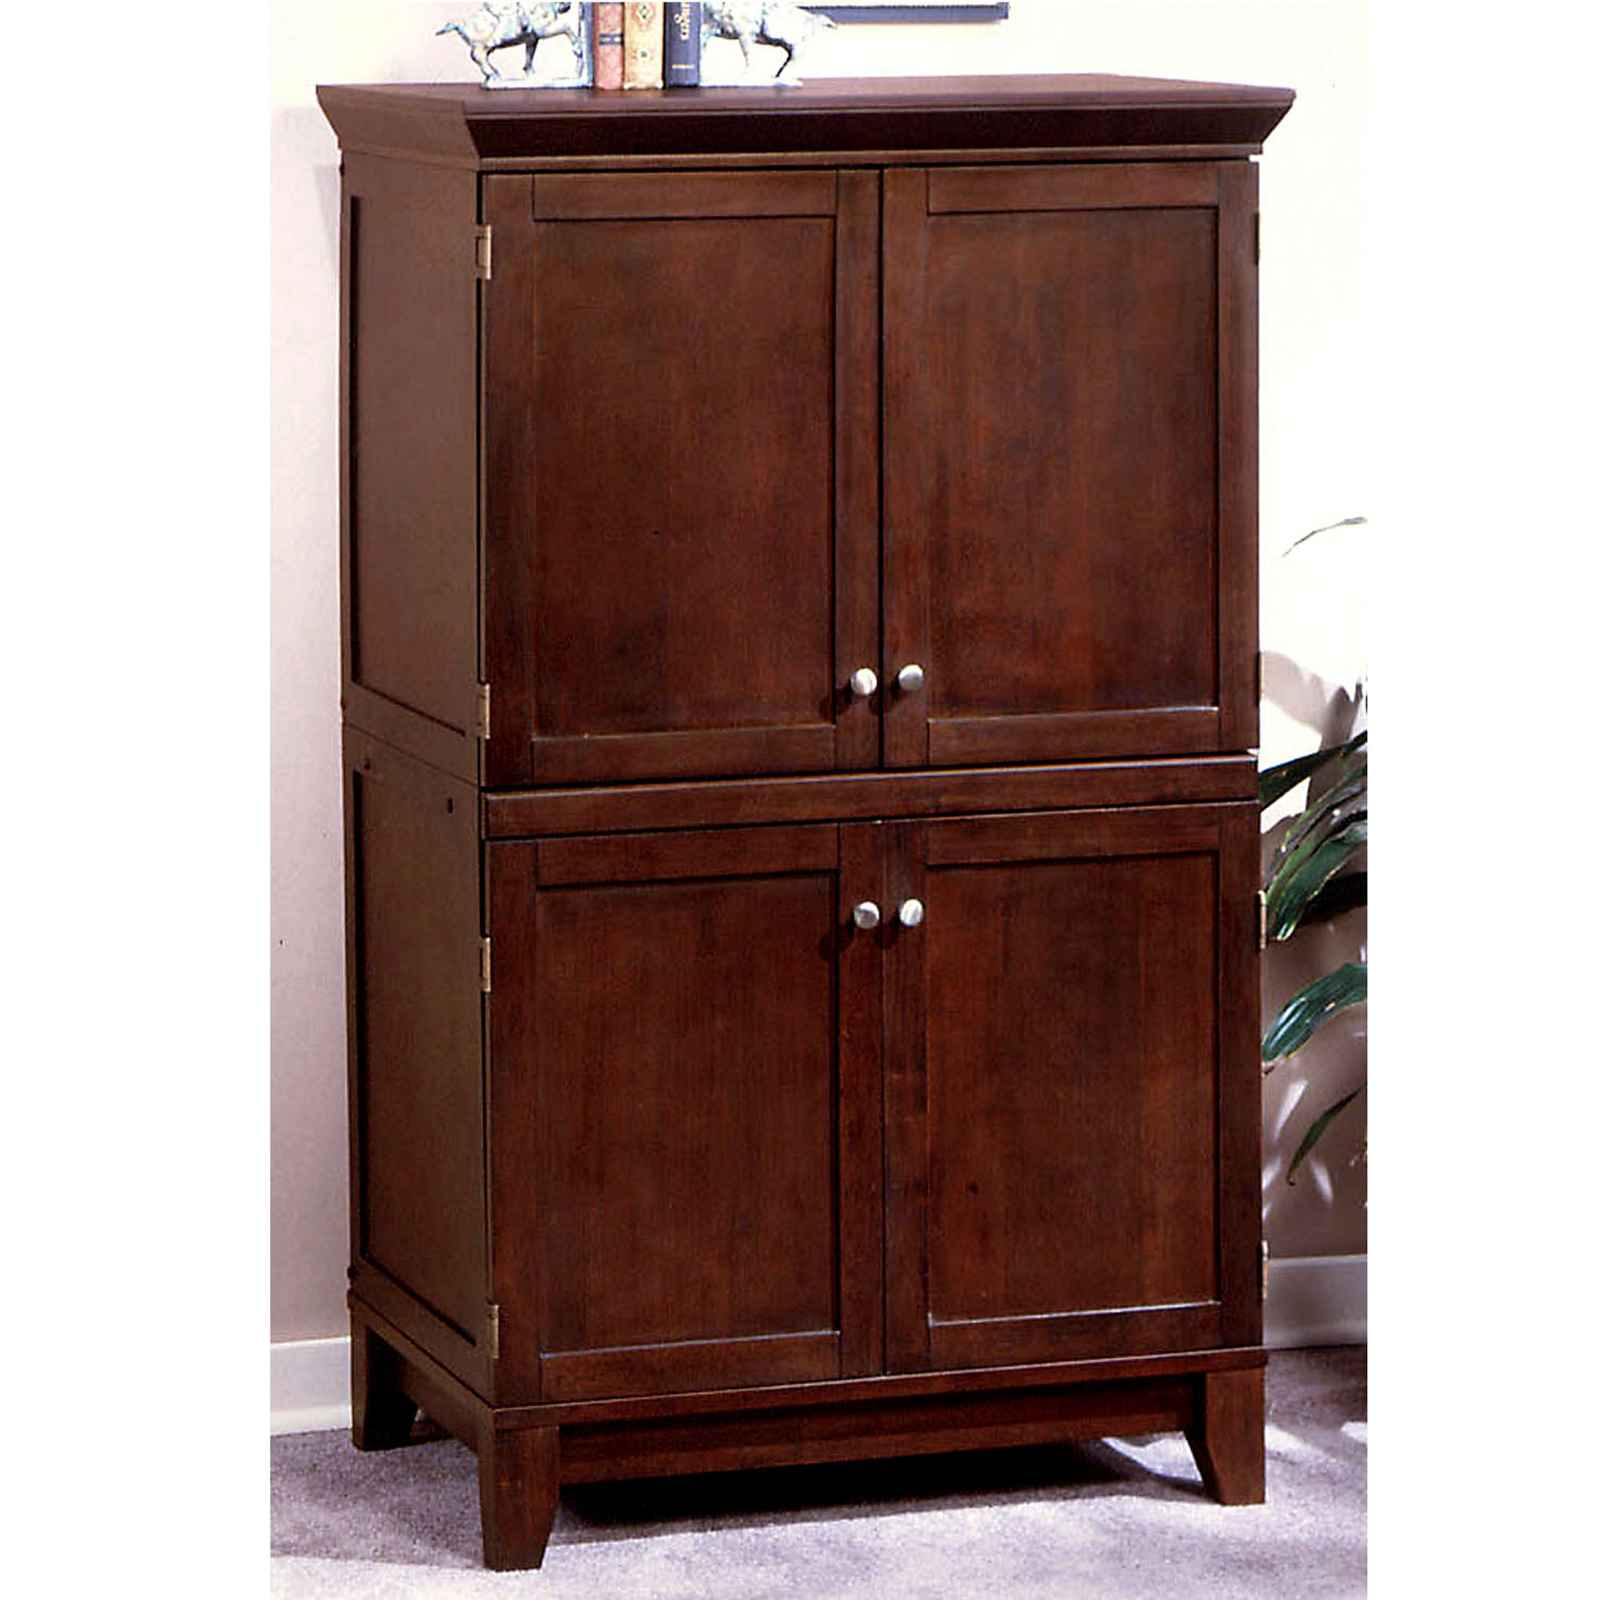 contemporary computer armoire furniture. Black Bedroom Furniture Sets. Home Design Ideas